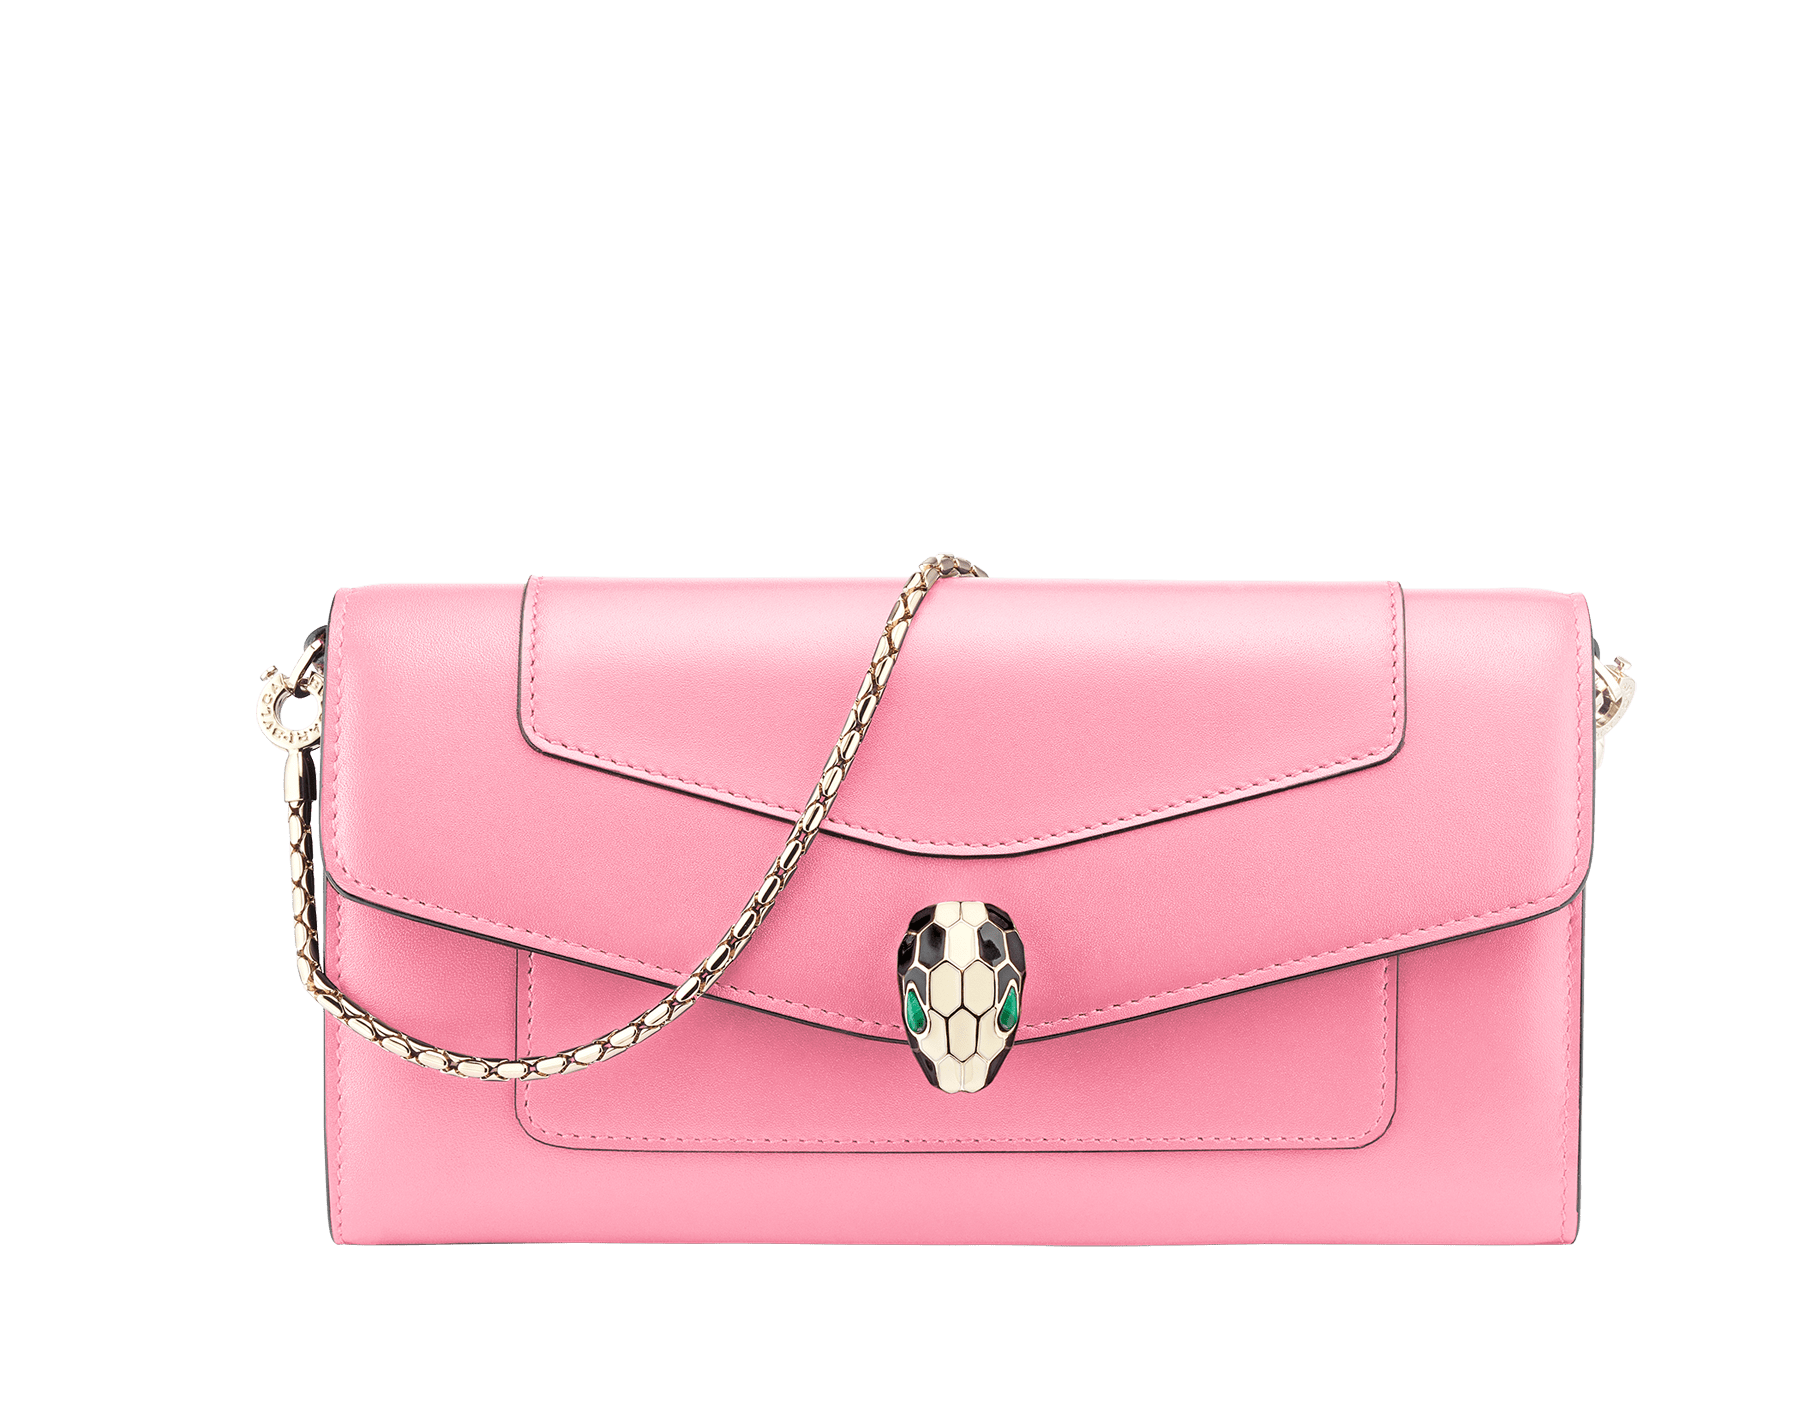 Serpenti Forever wallet pouch in flamingo quartz and roman garnet calf leather. Iconic snakehead stud closure in black and white enamel, with green malachite eyes. 288022 image 1